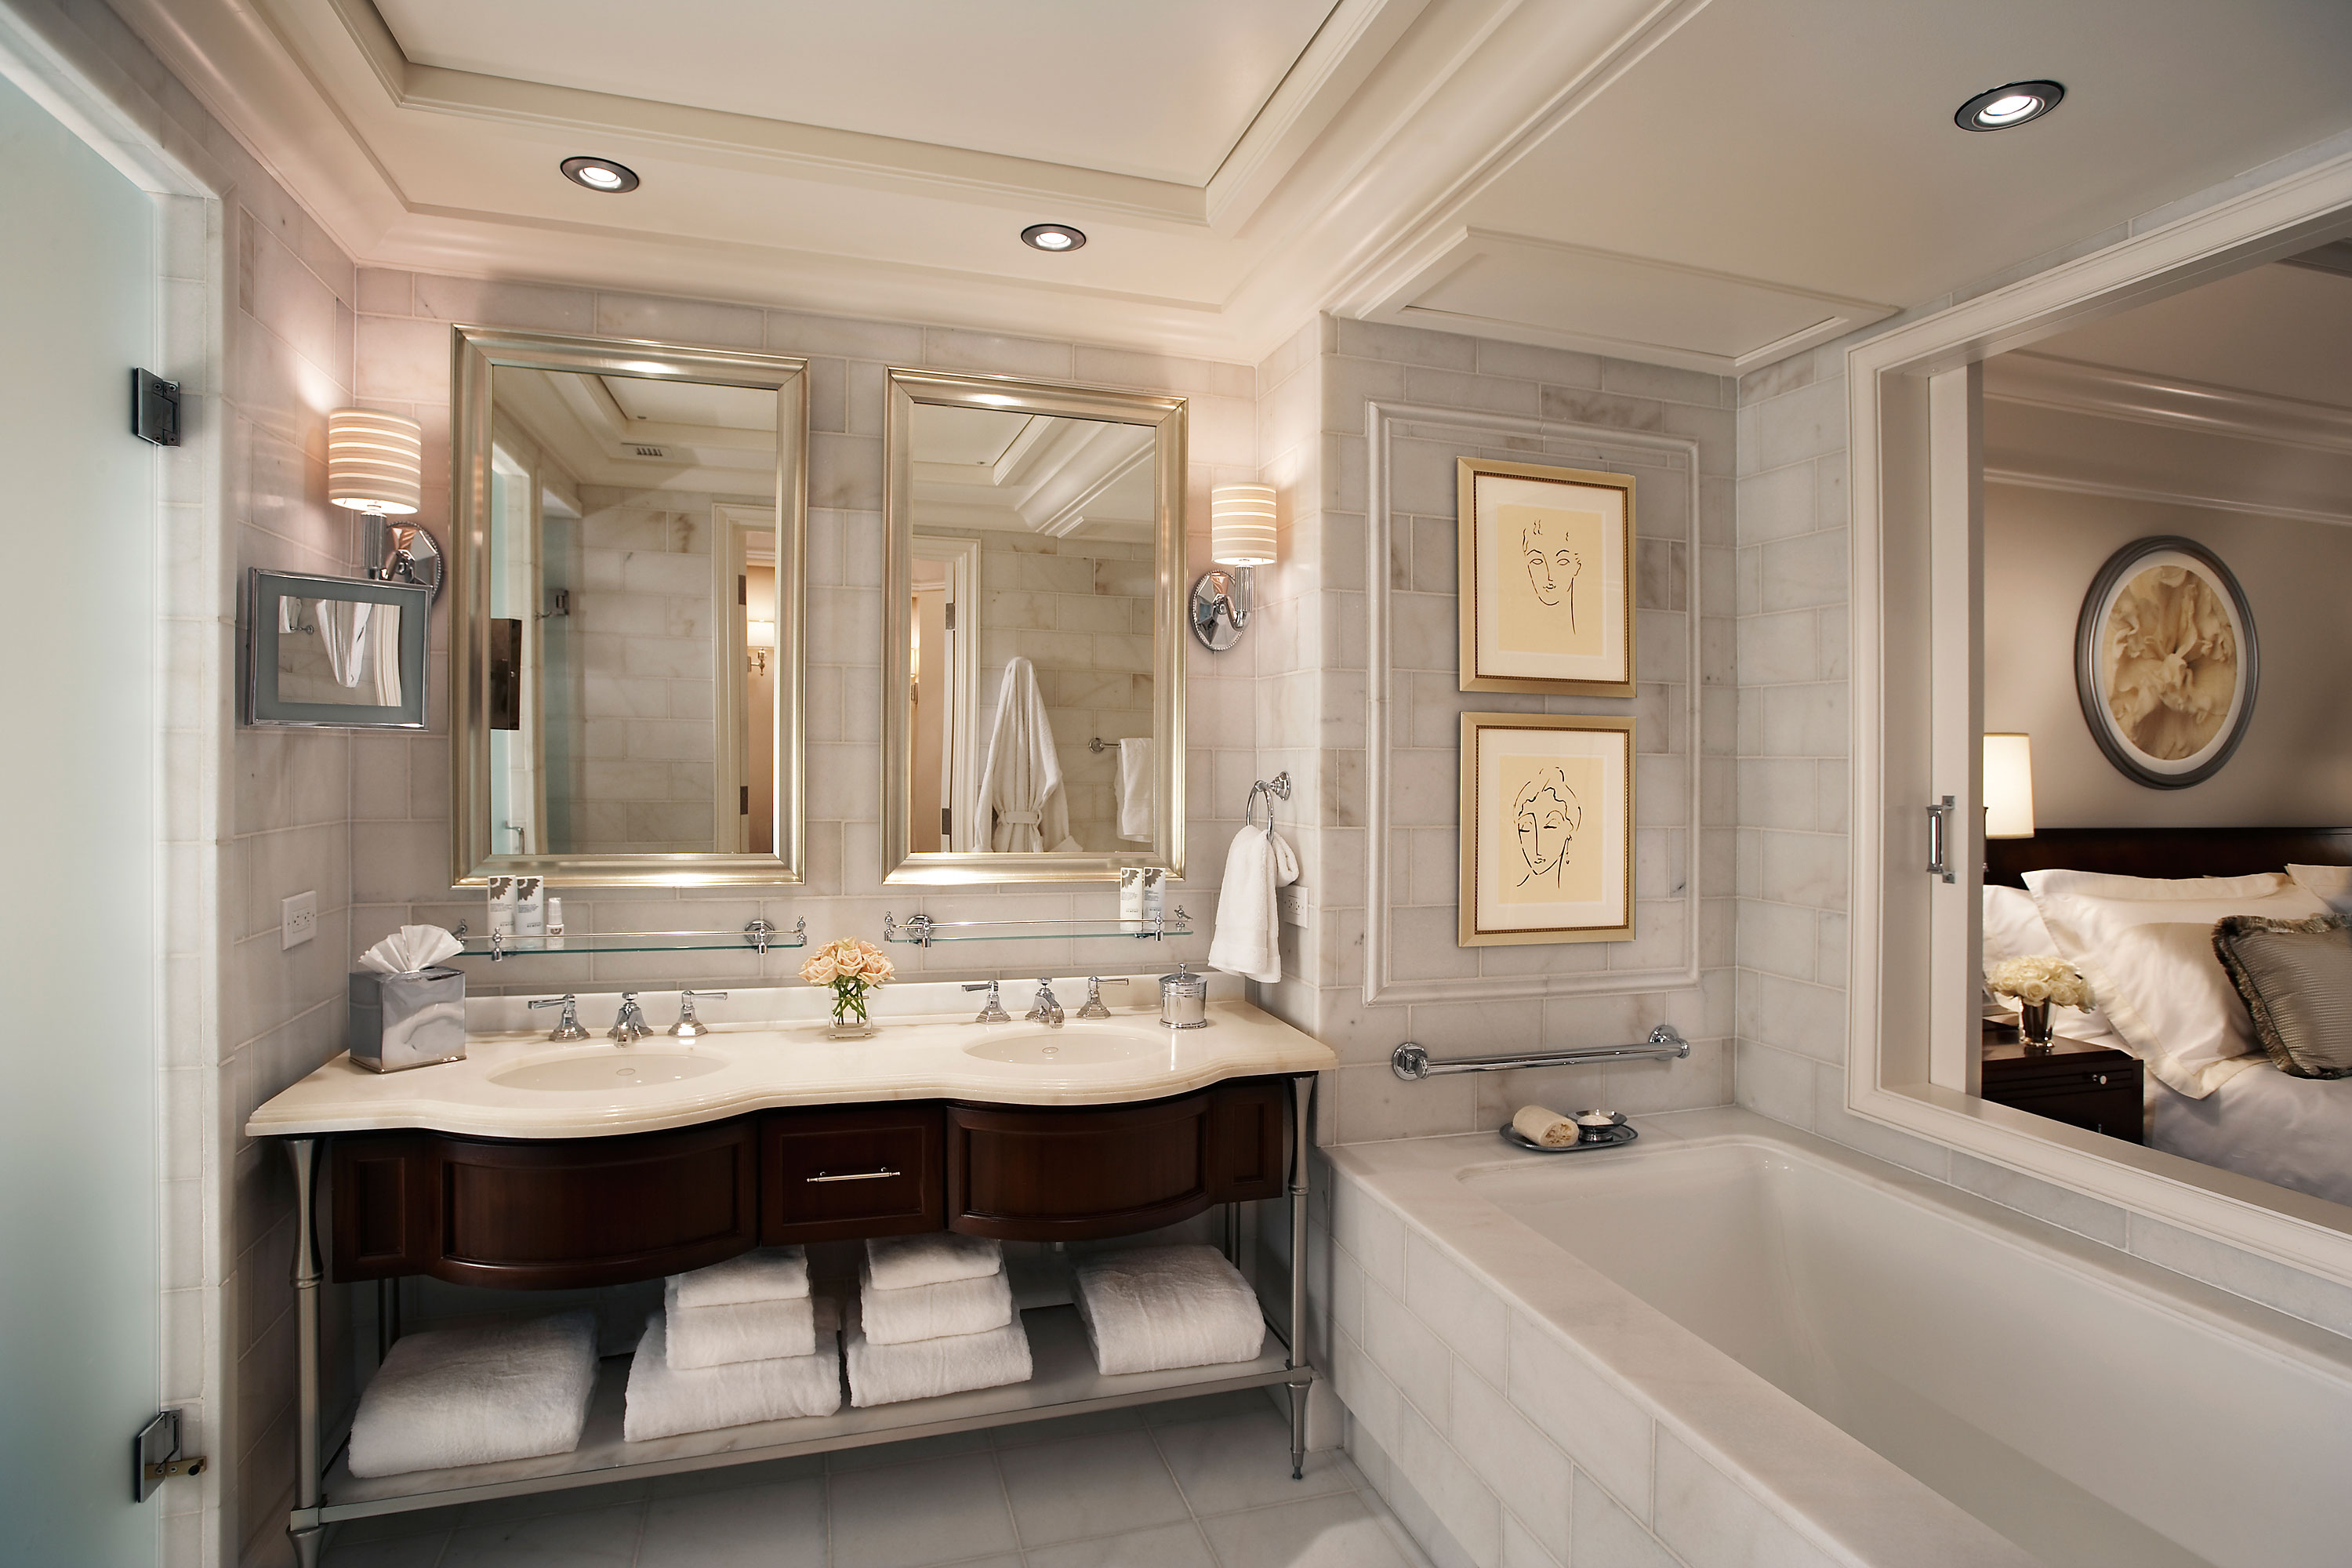 Edge Treatments And Profiles